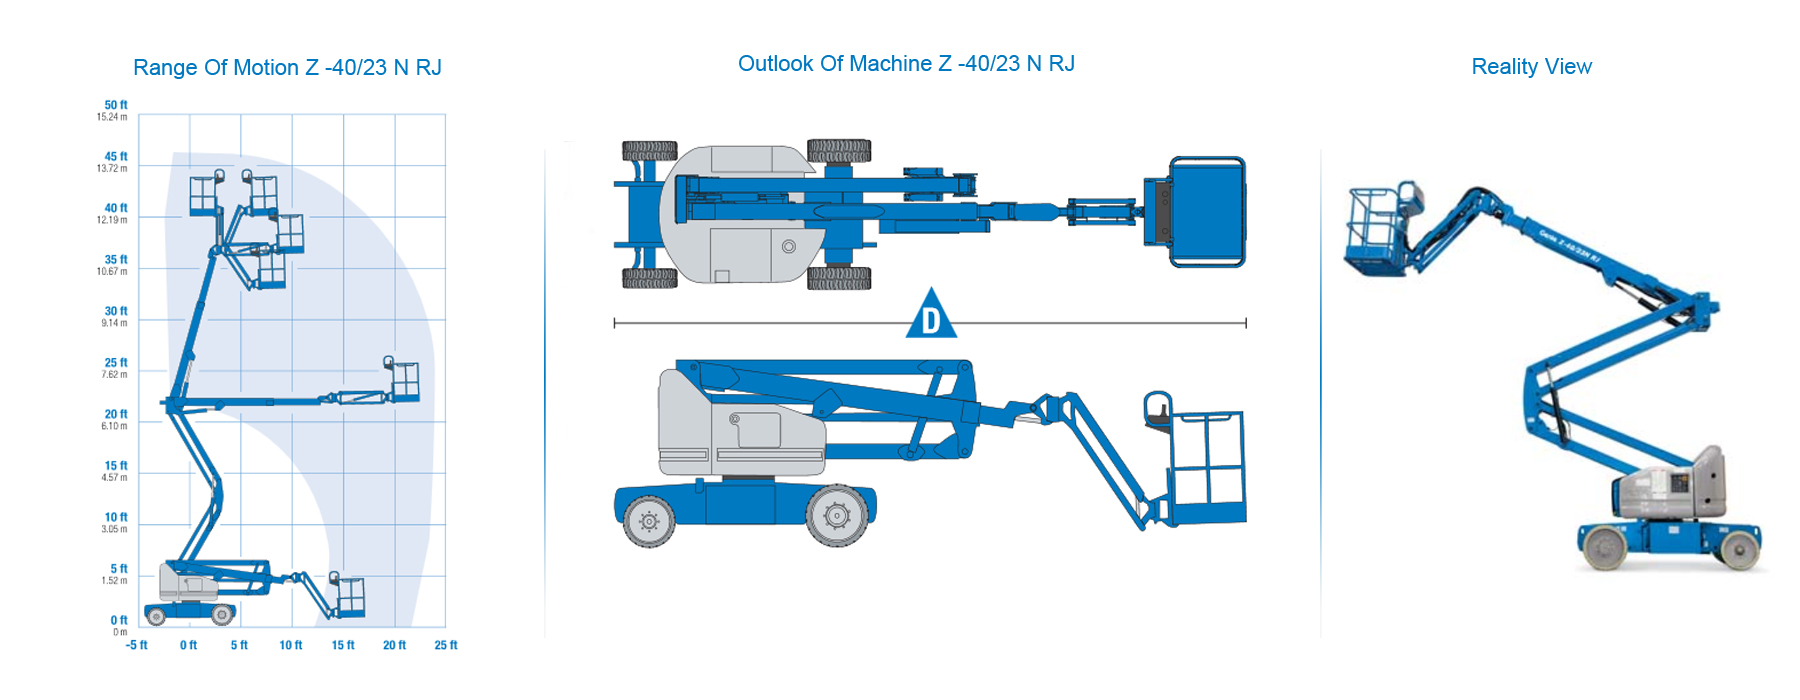 Genie Boom Lift Dealer India| Genie Boom Lifts Model Z™-40/23N - Rj